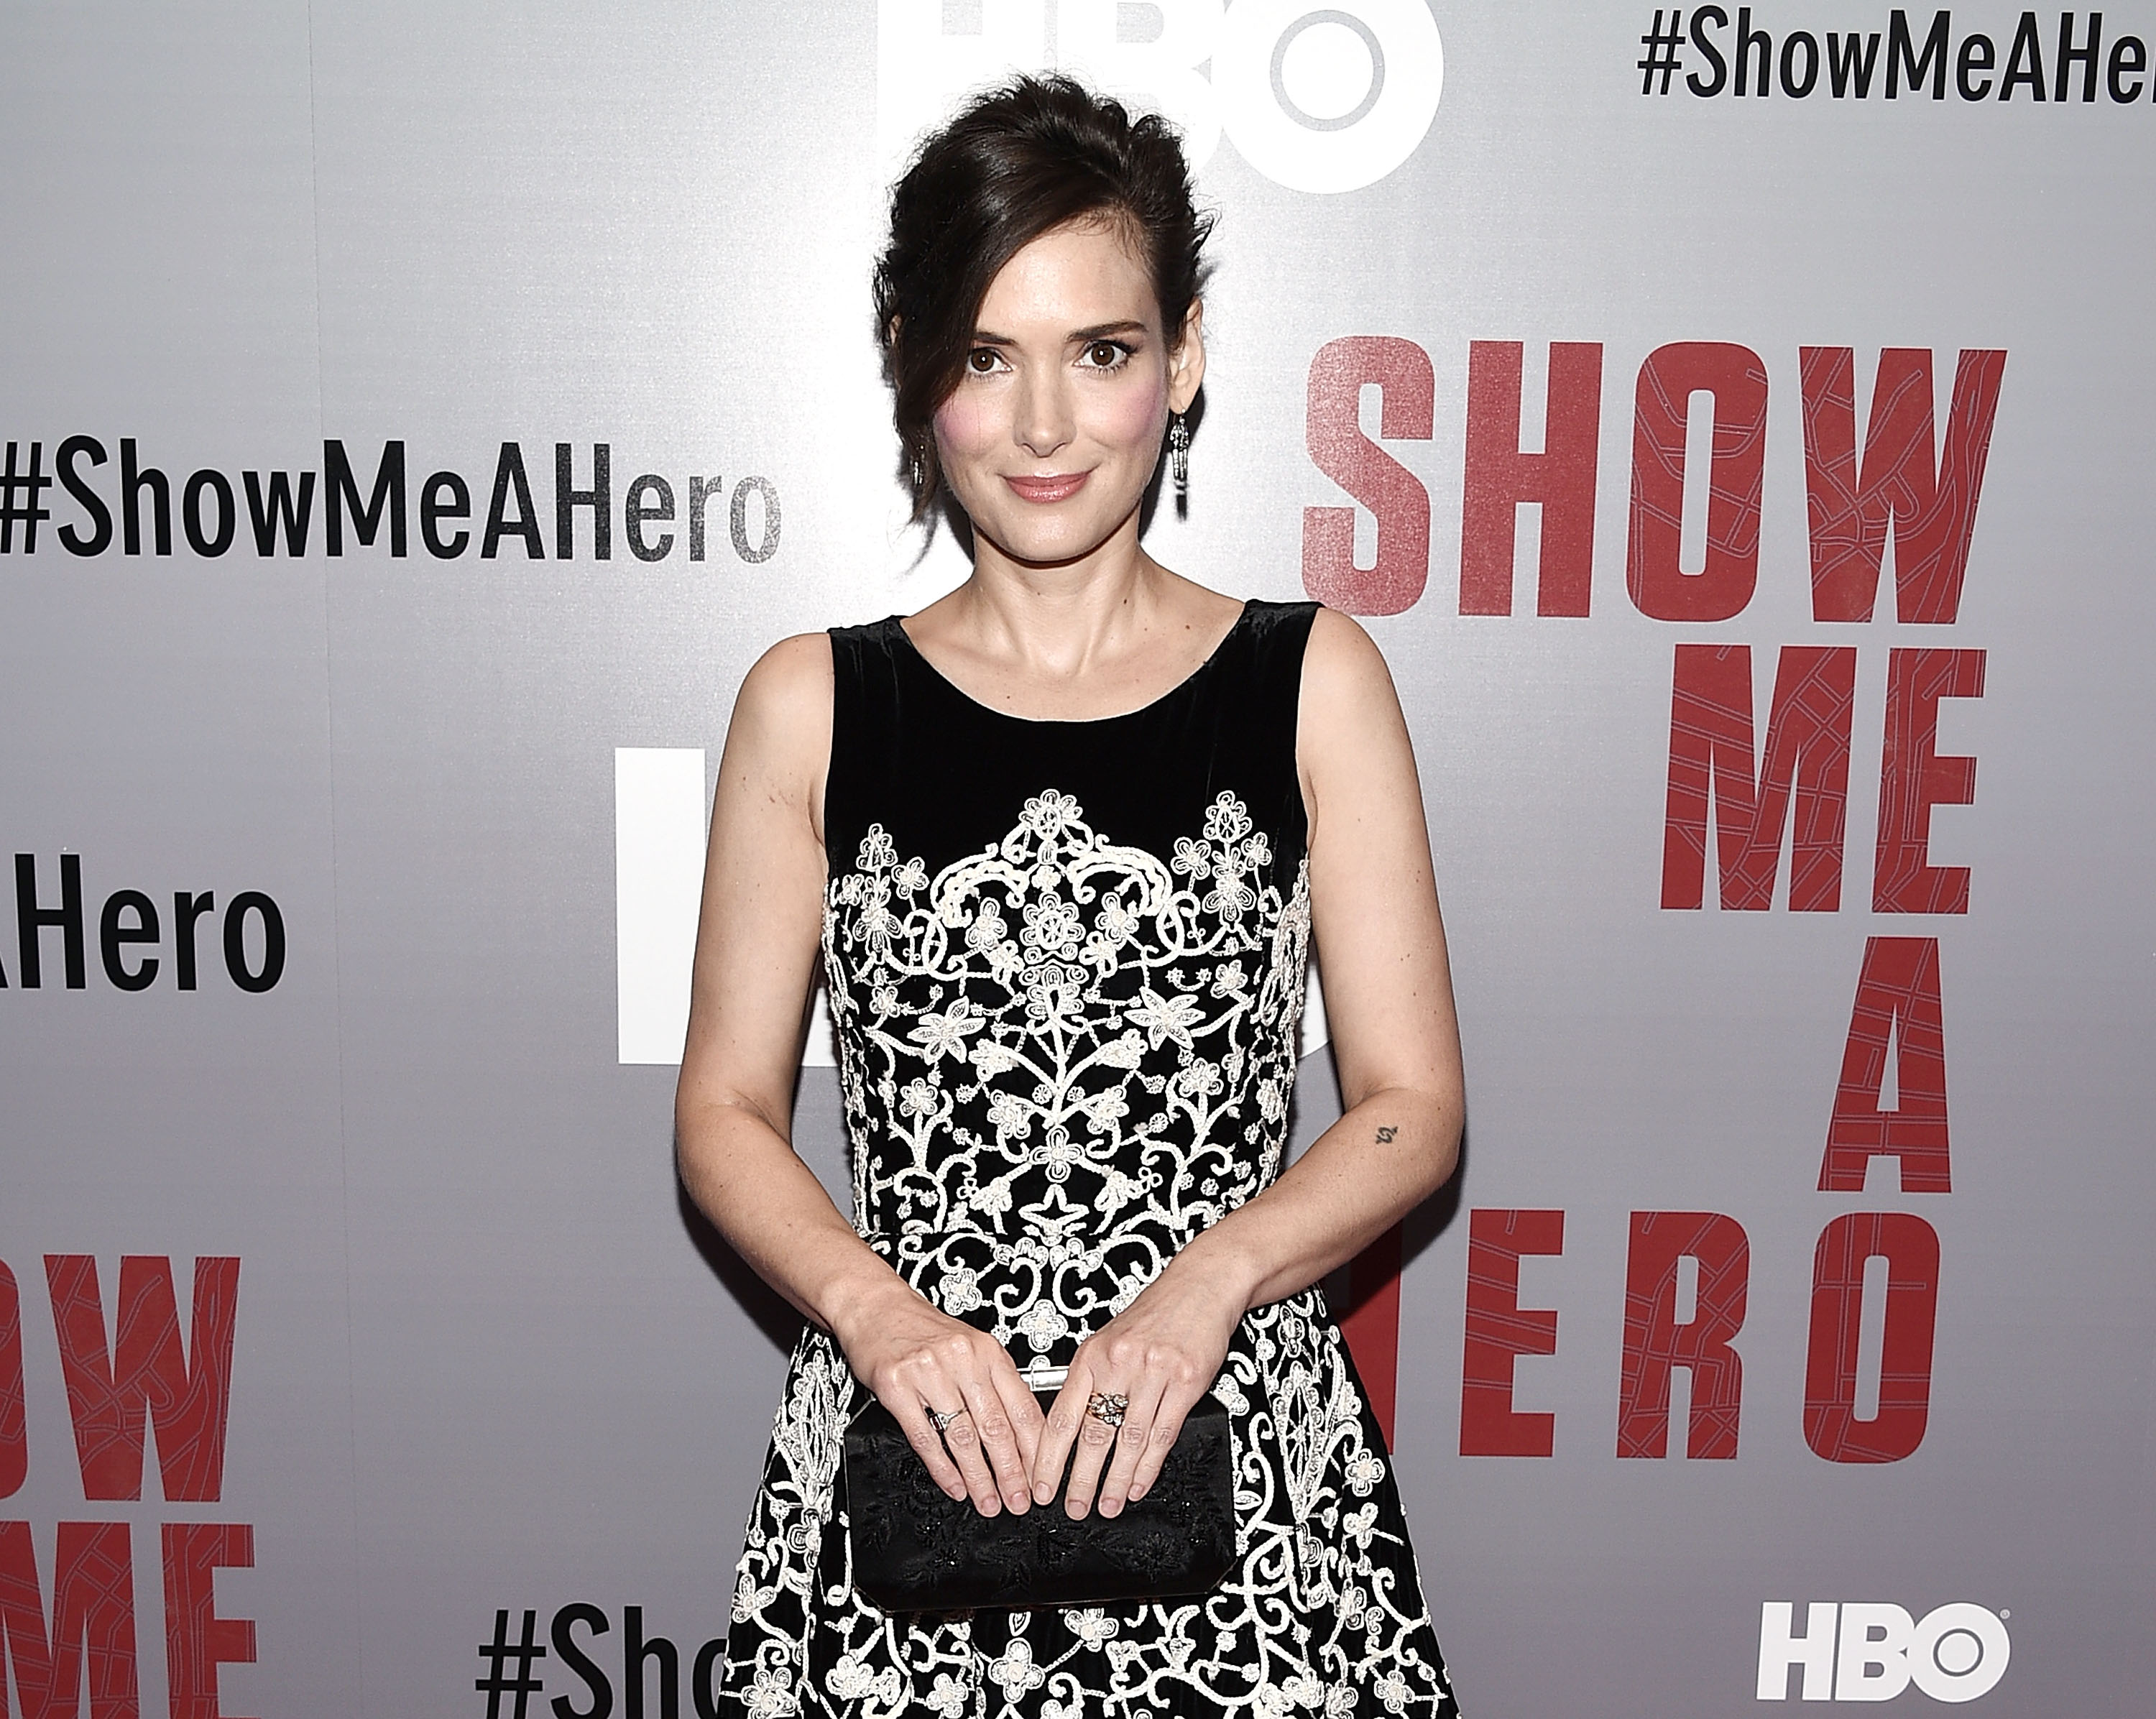 Winona Ryder seems a little bummed out that she has lost her stalker (Picture: Andrew H. Walker/Getty Images)